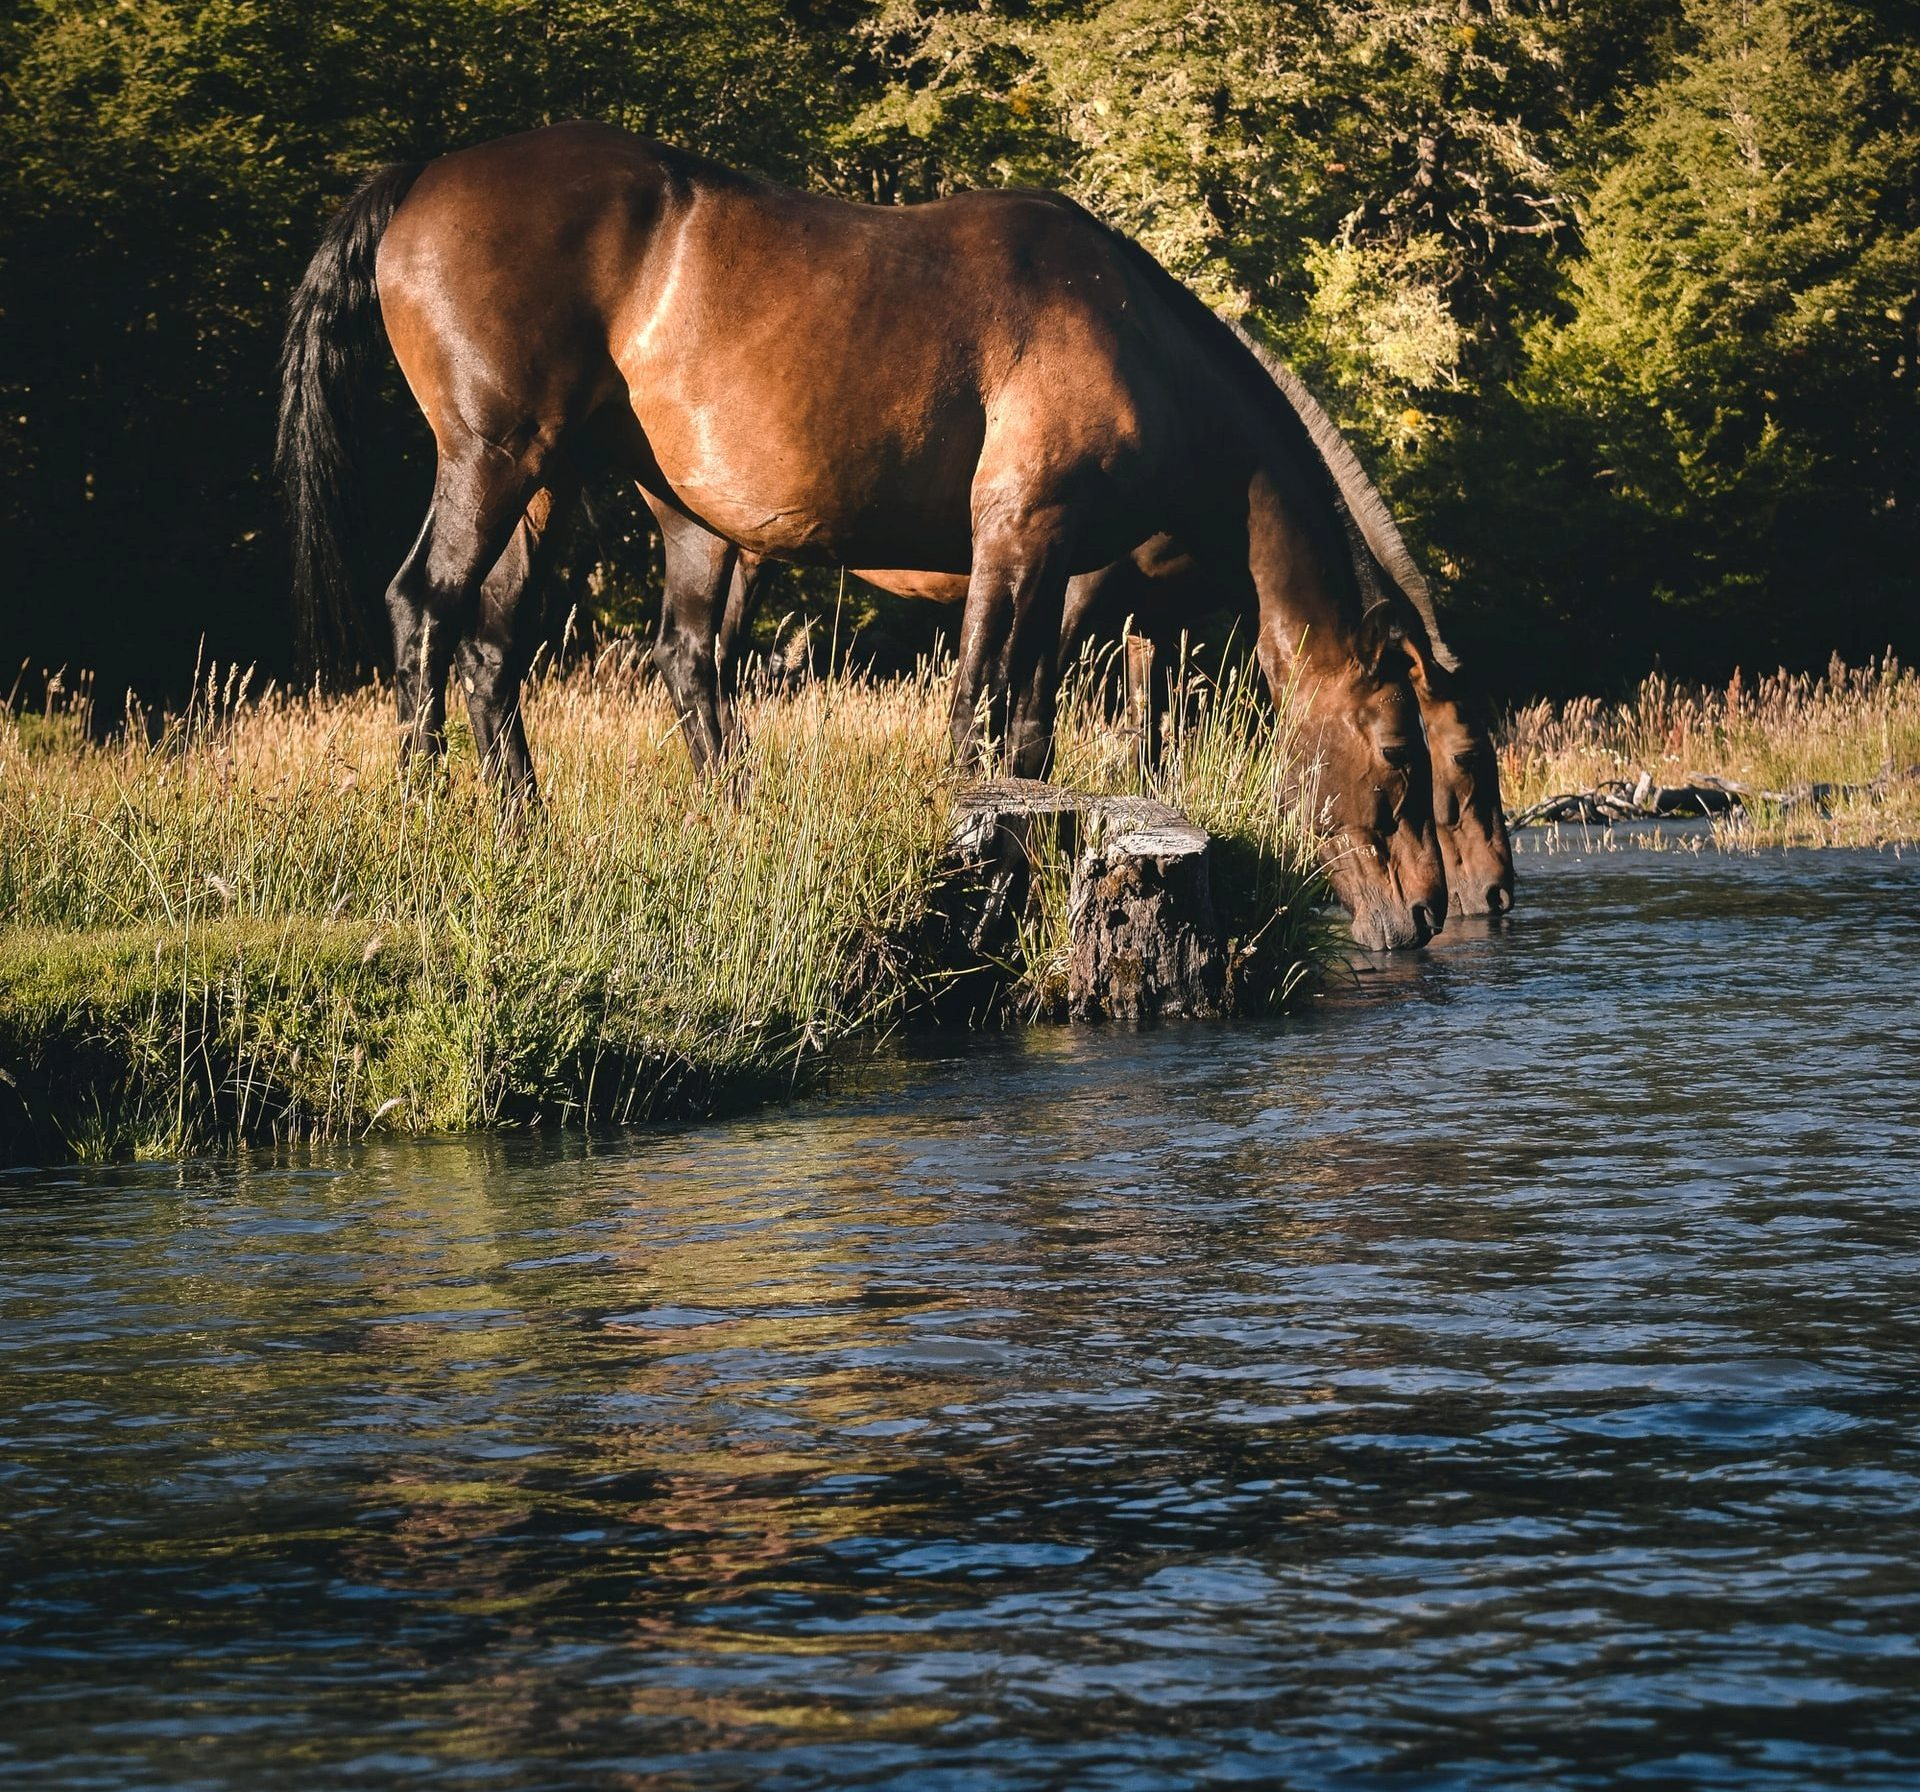 A Redmond Story: How Taylor Got Her Horse to Drink More Water